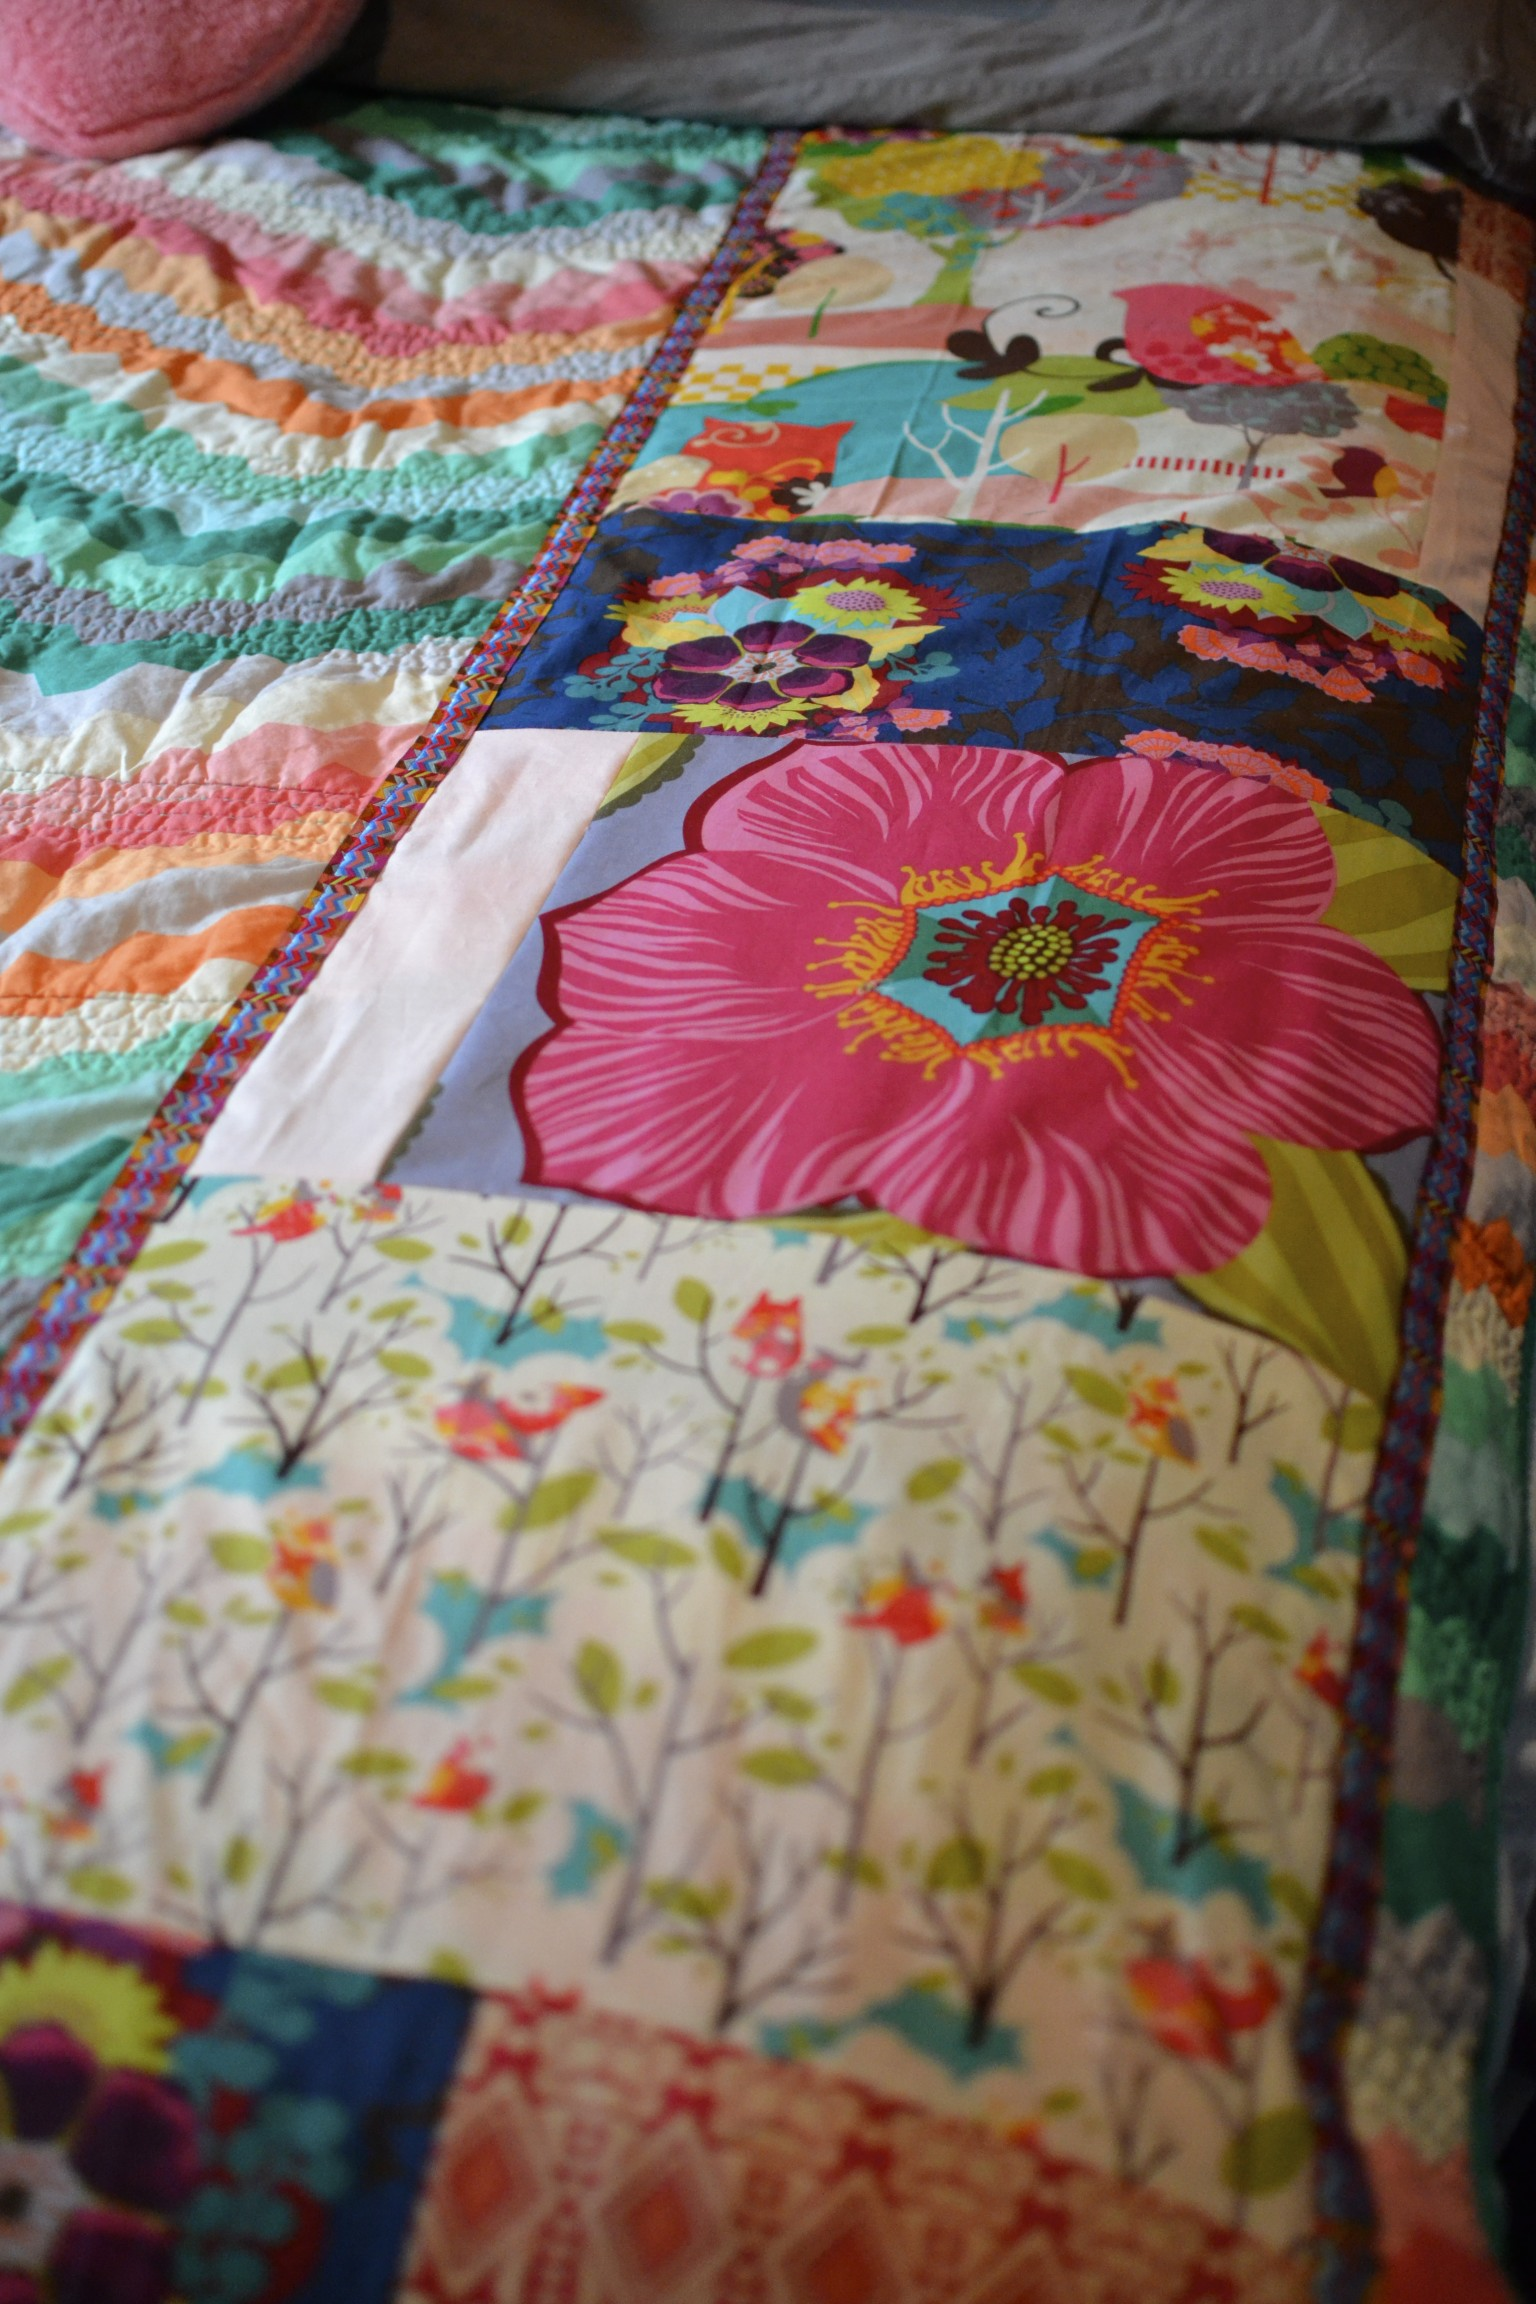 a new quilt i have been working on. more on that story later.